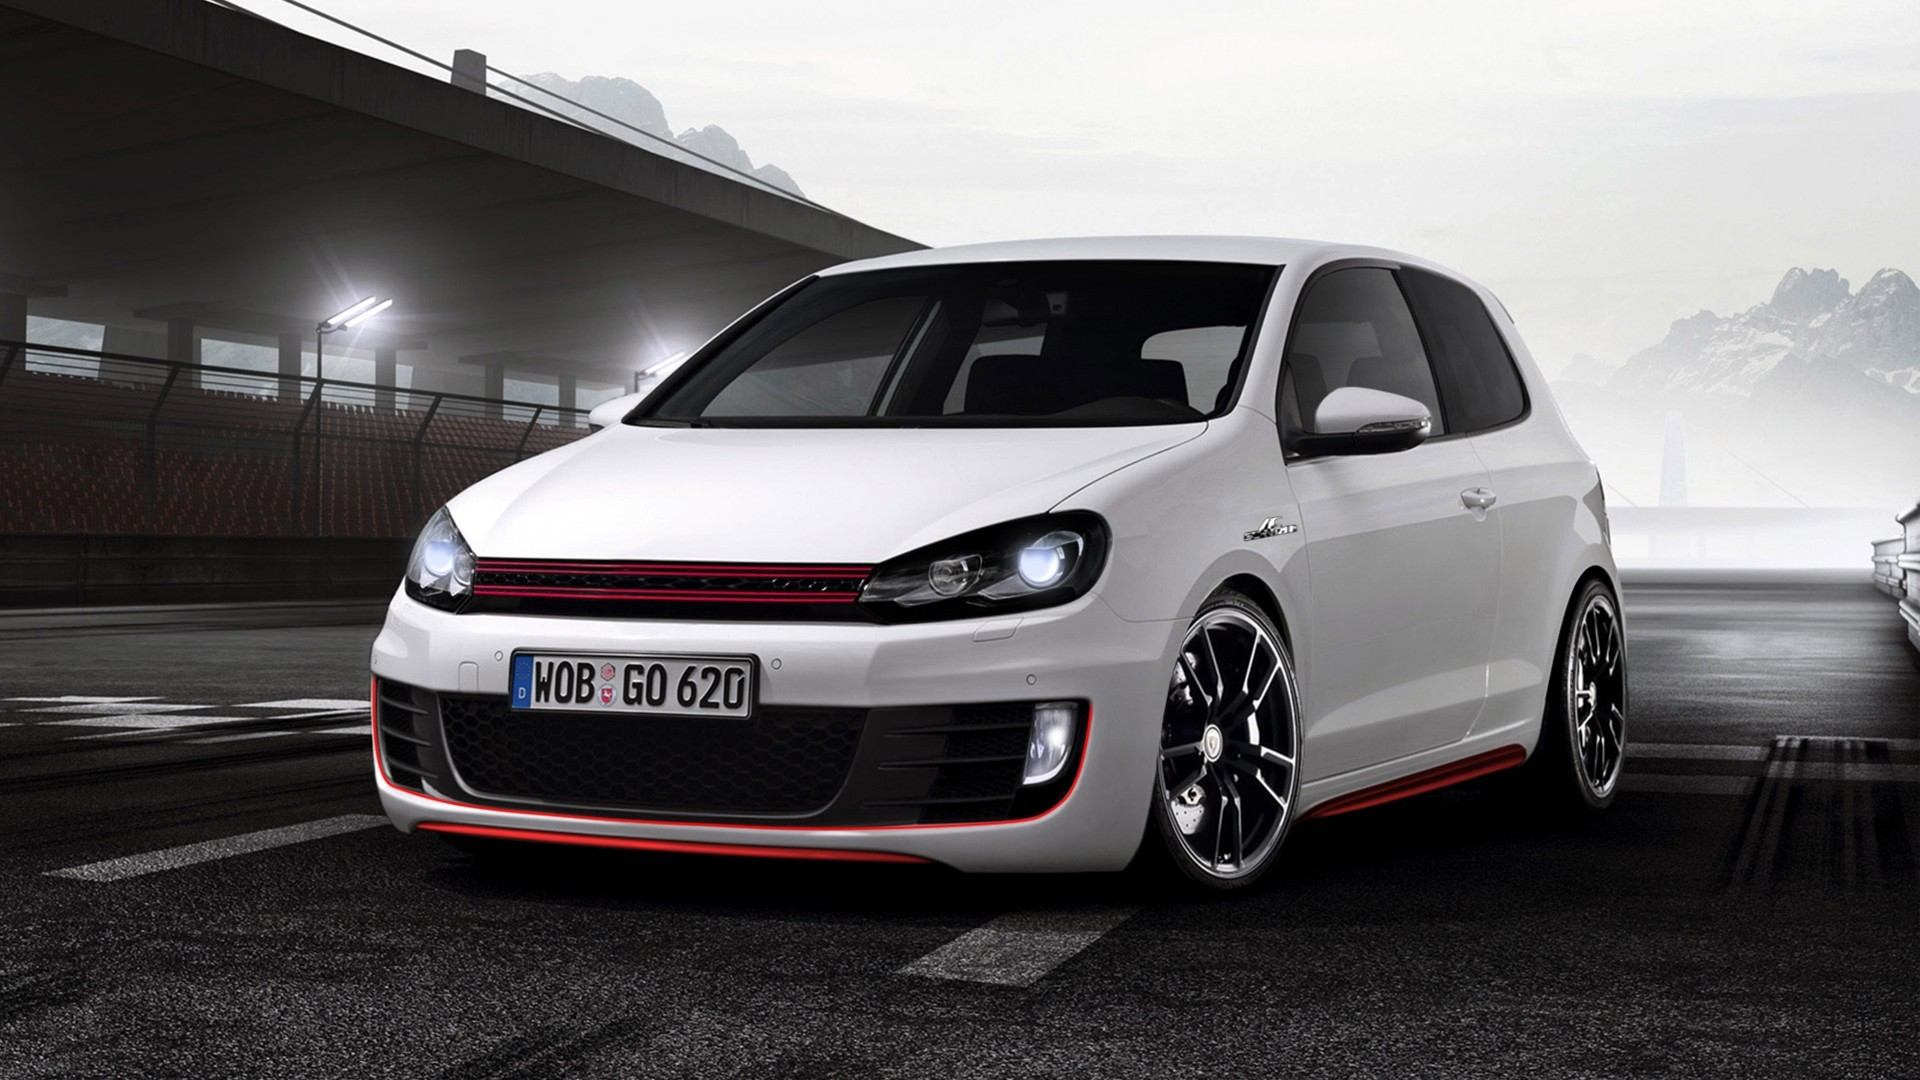 Volkswagen VW Wallpaper Volkswagen, VW, Golf, GTI